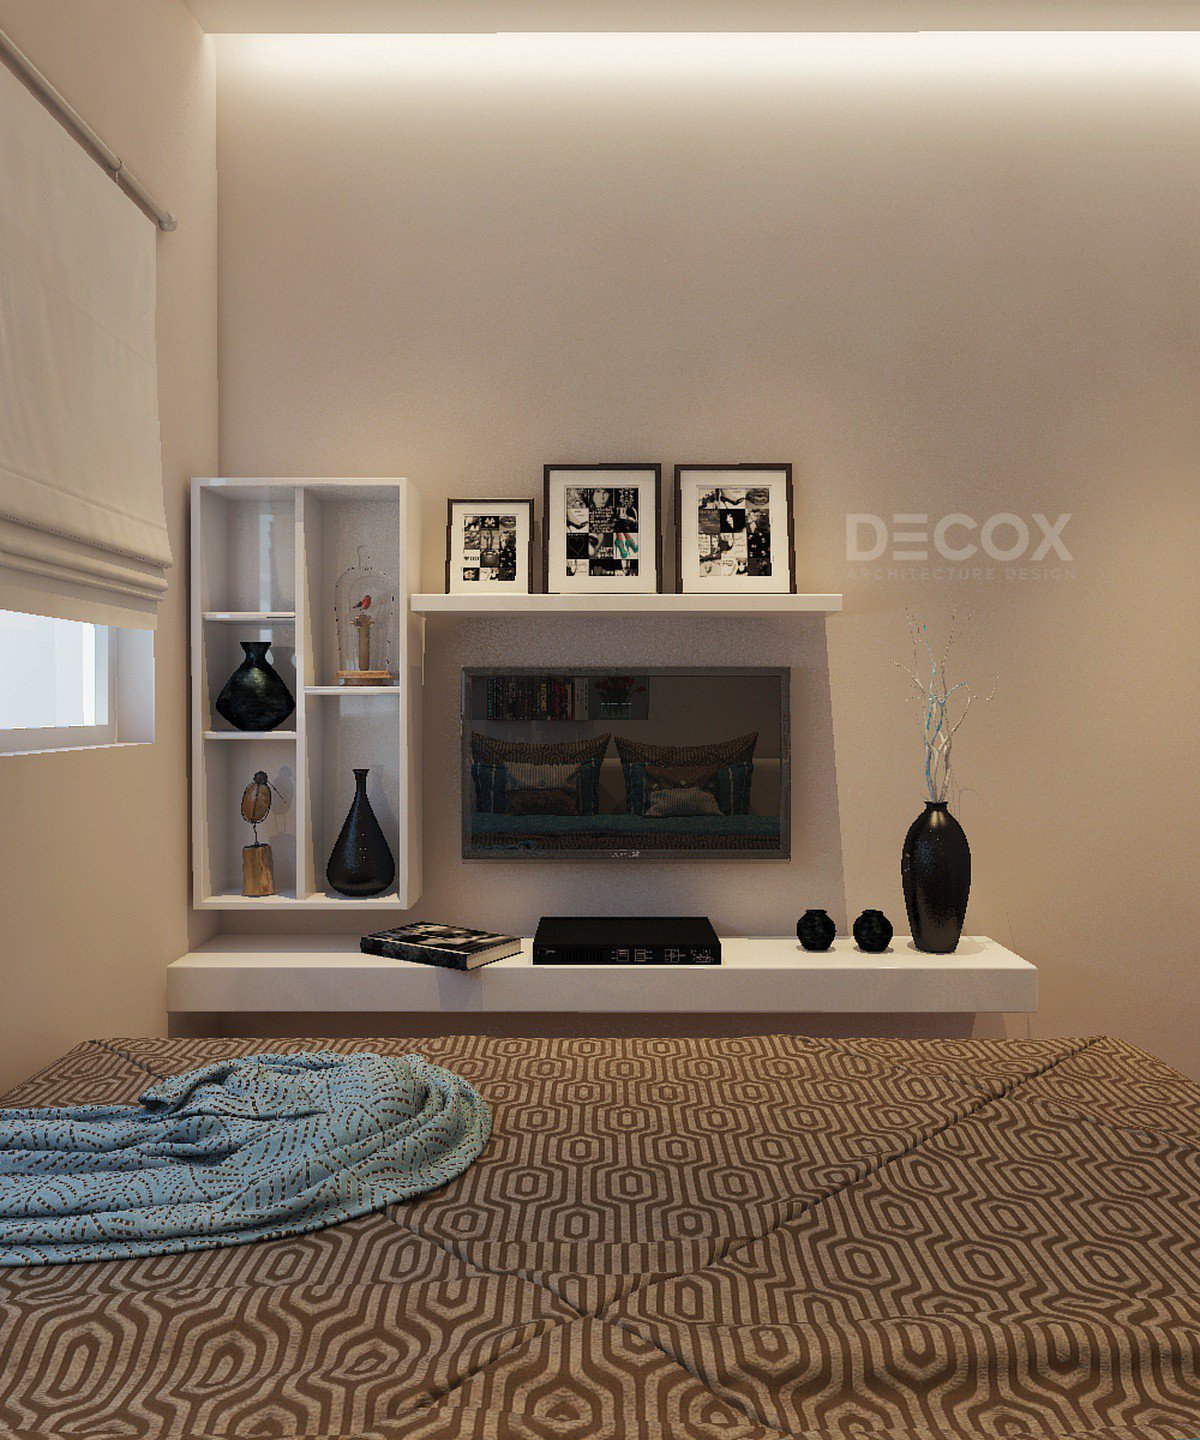 thiet-ke-noi-that-can-ho-useful-apartment-68m2-08-decox-design